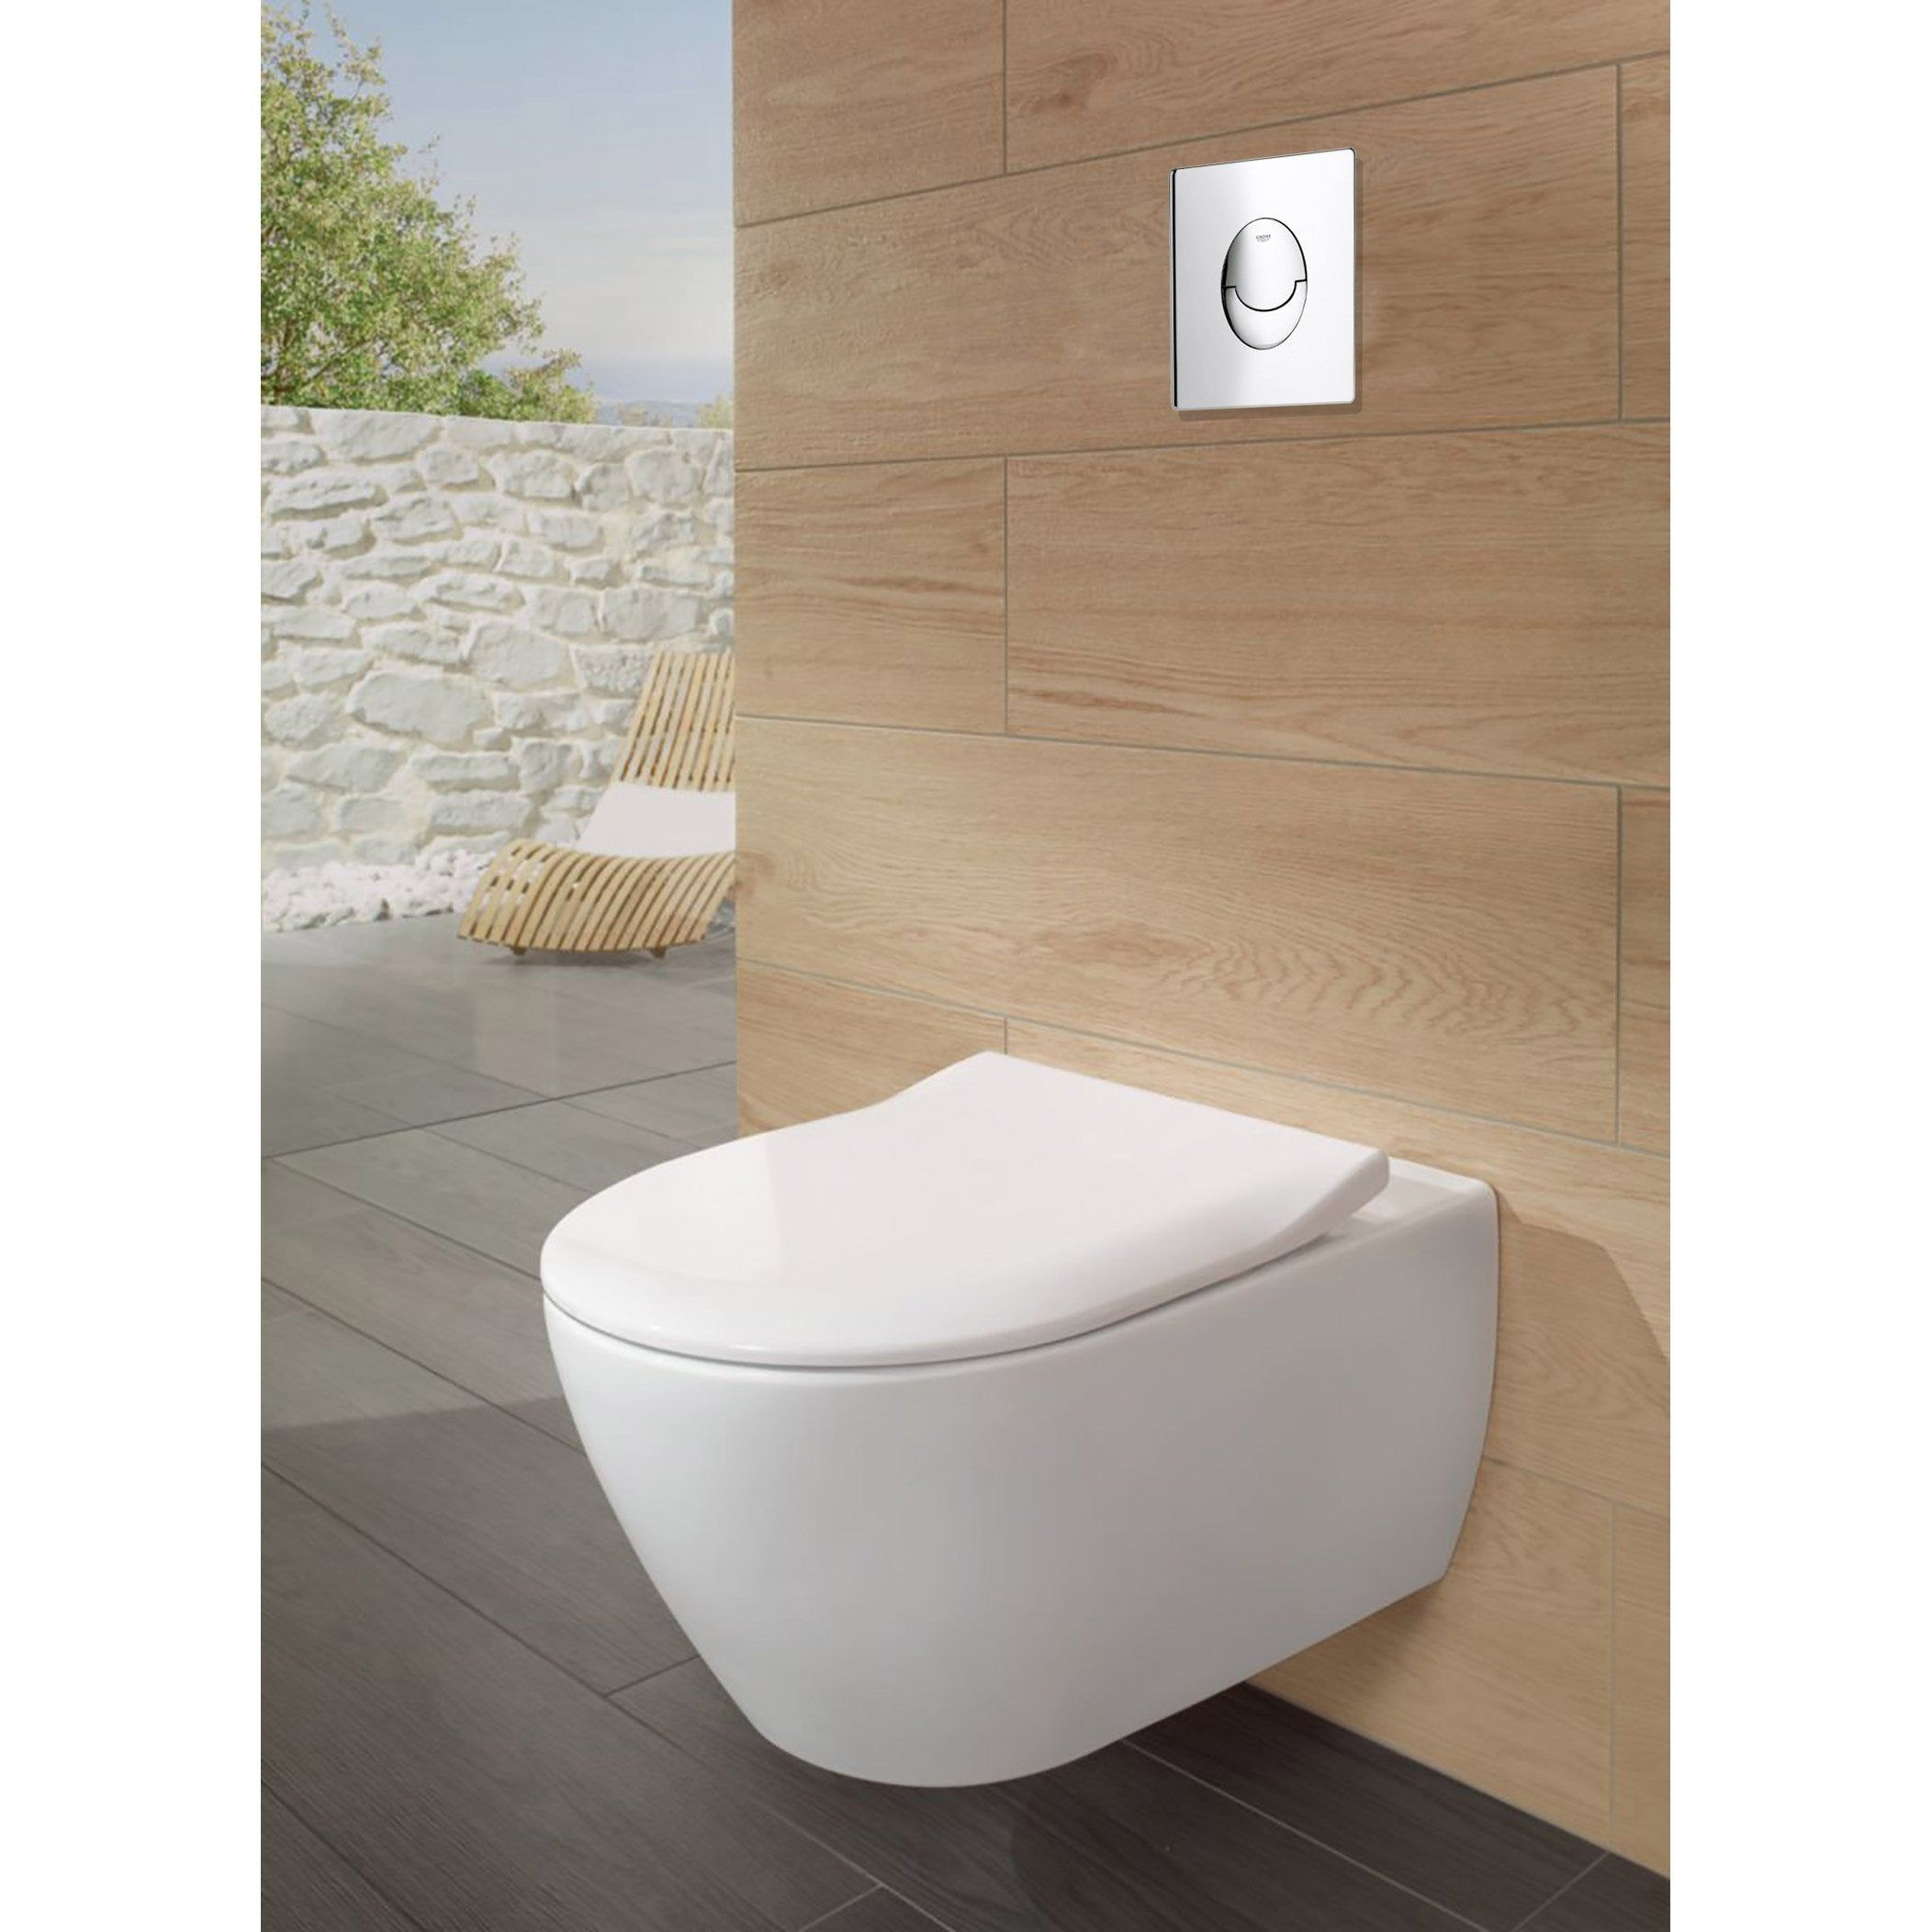 Pack Wc Suspendu Bati Sol Double Rapid Sl Et Subway Chr Grohe Villeroy Boch Pack Wc Suspendu Wc Suspendu Et Pack Wc